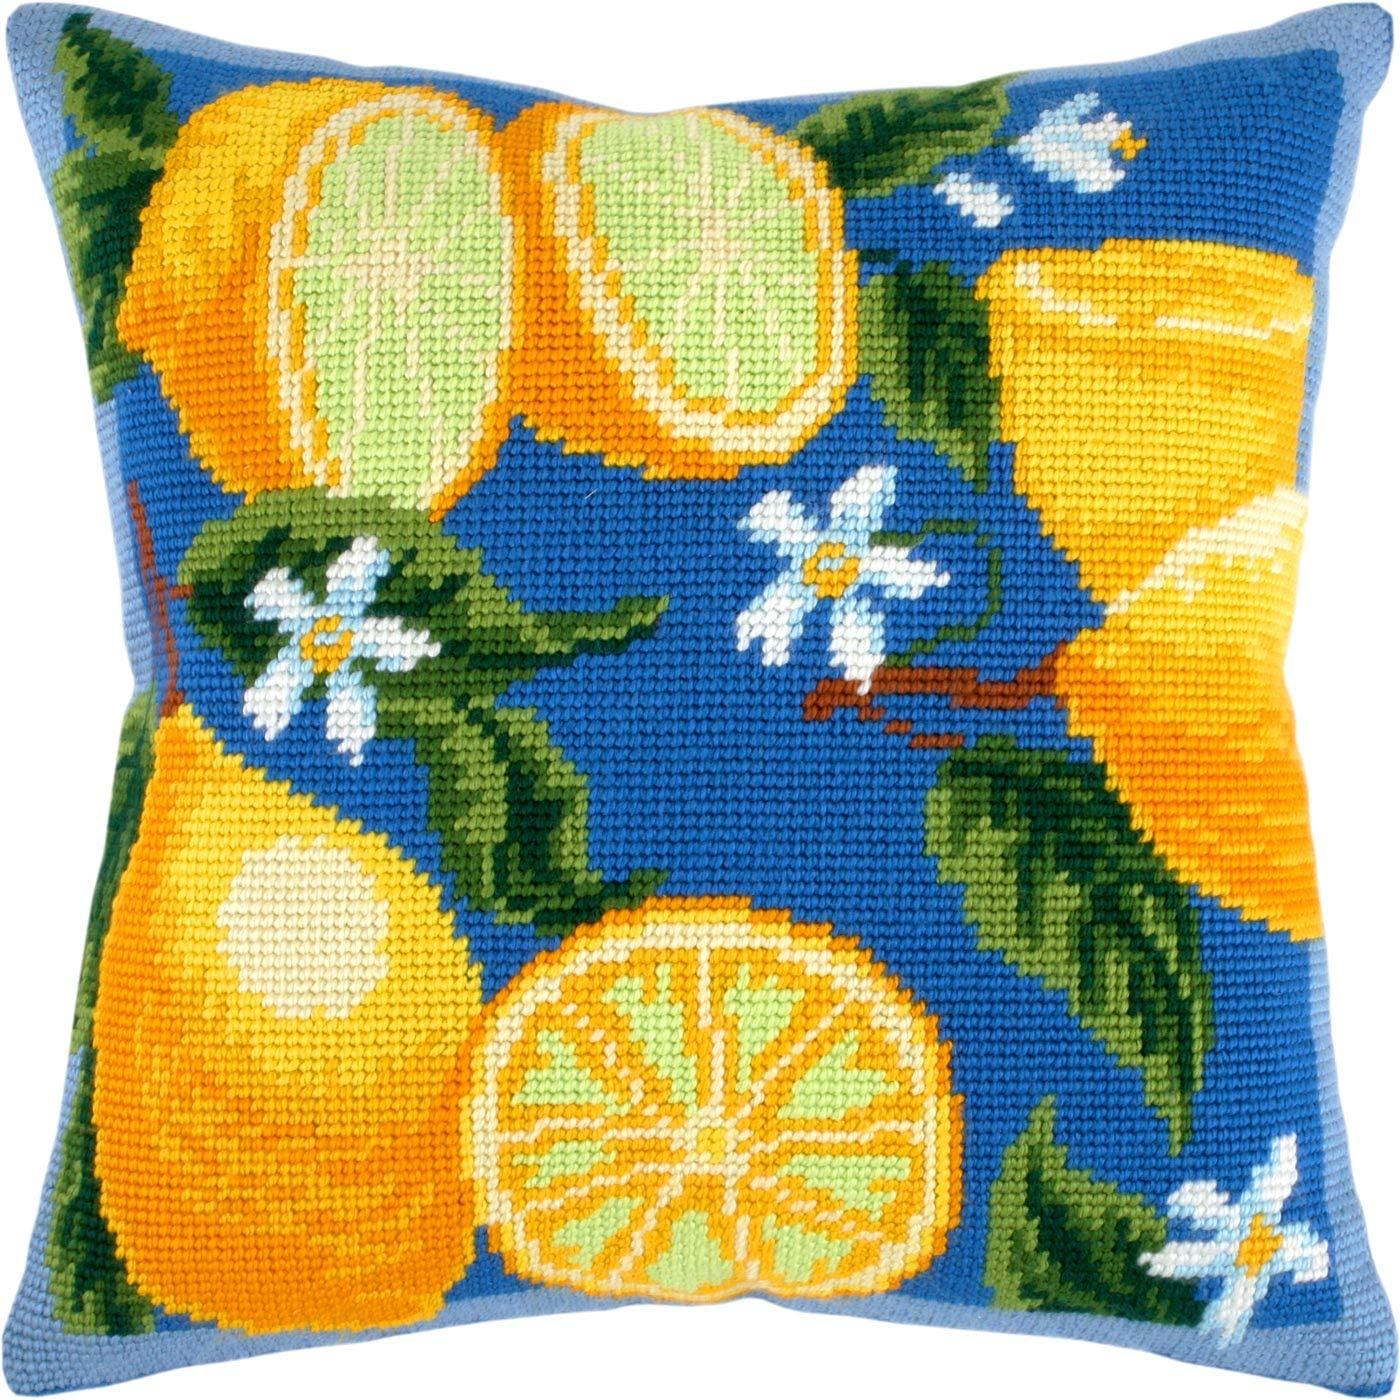 Polar Bears Needlepoint Kit Printed Tapestry Canvas Blue Cushion Back Included Throw Pillow 16/×16 Inches European Quality